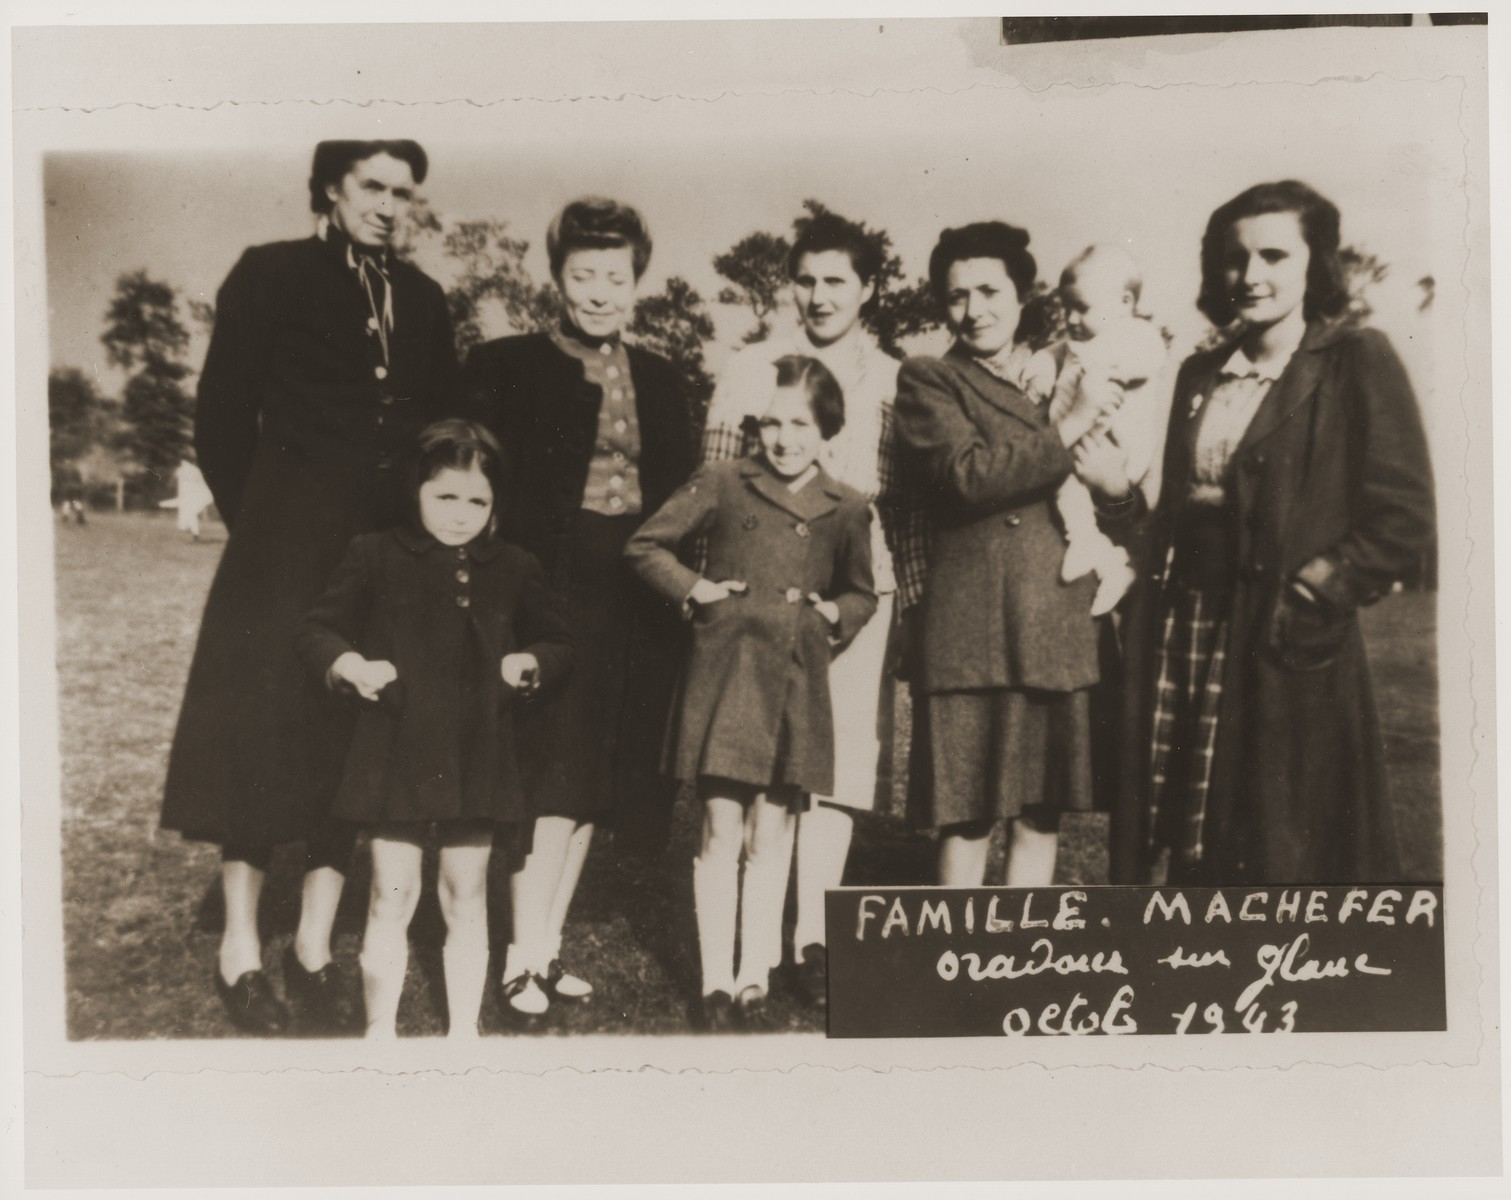 The Machefer family poses together in Oradour.    All of the people pictured here, except for the father, were killed by the SS during the June 10, 1944 massacre.